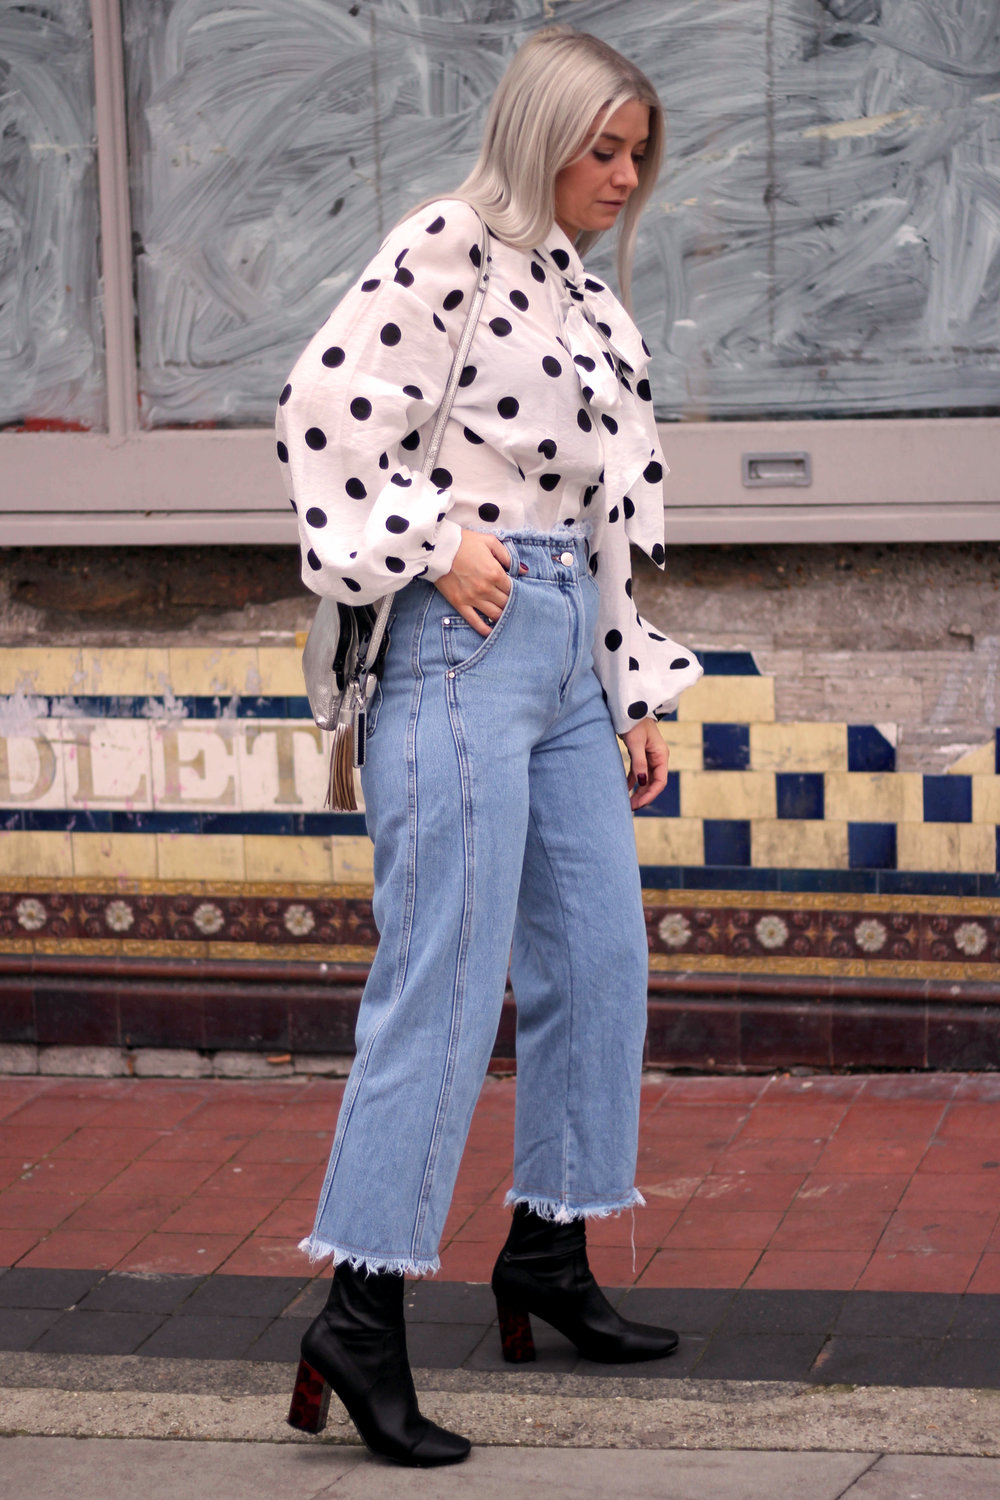 PUSSY BOW POLKA DOT BLOUSE, WIDE LEG FRAYED TOPSHOP JEANS, BLACK ANKLE BOOTS, NORTHERN MAGPIE, JOEY TAYLOR 4